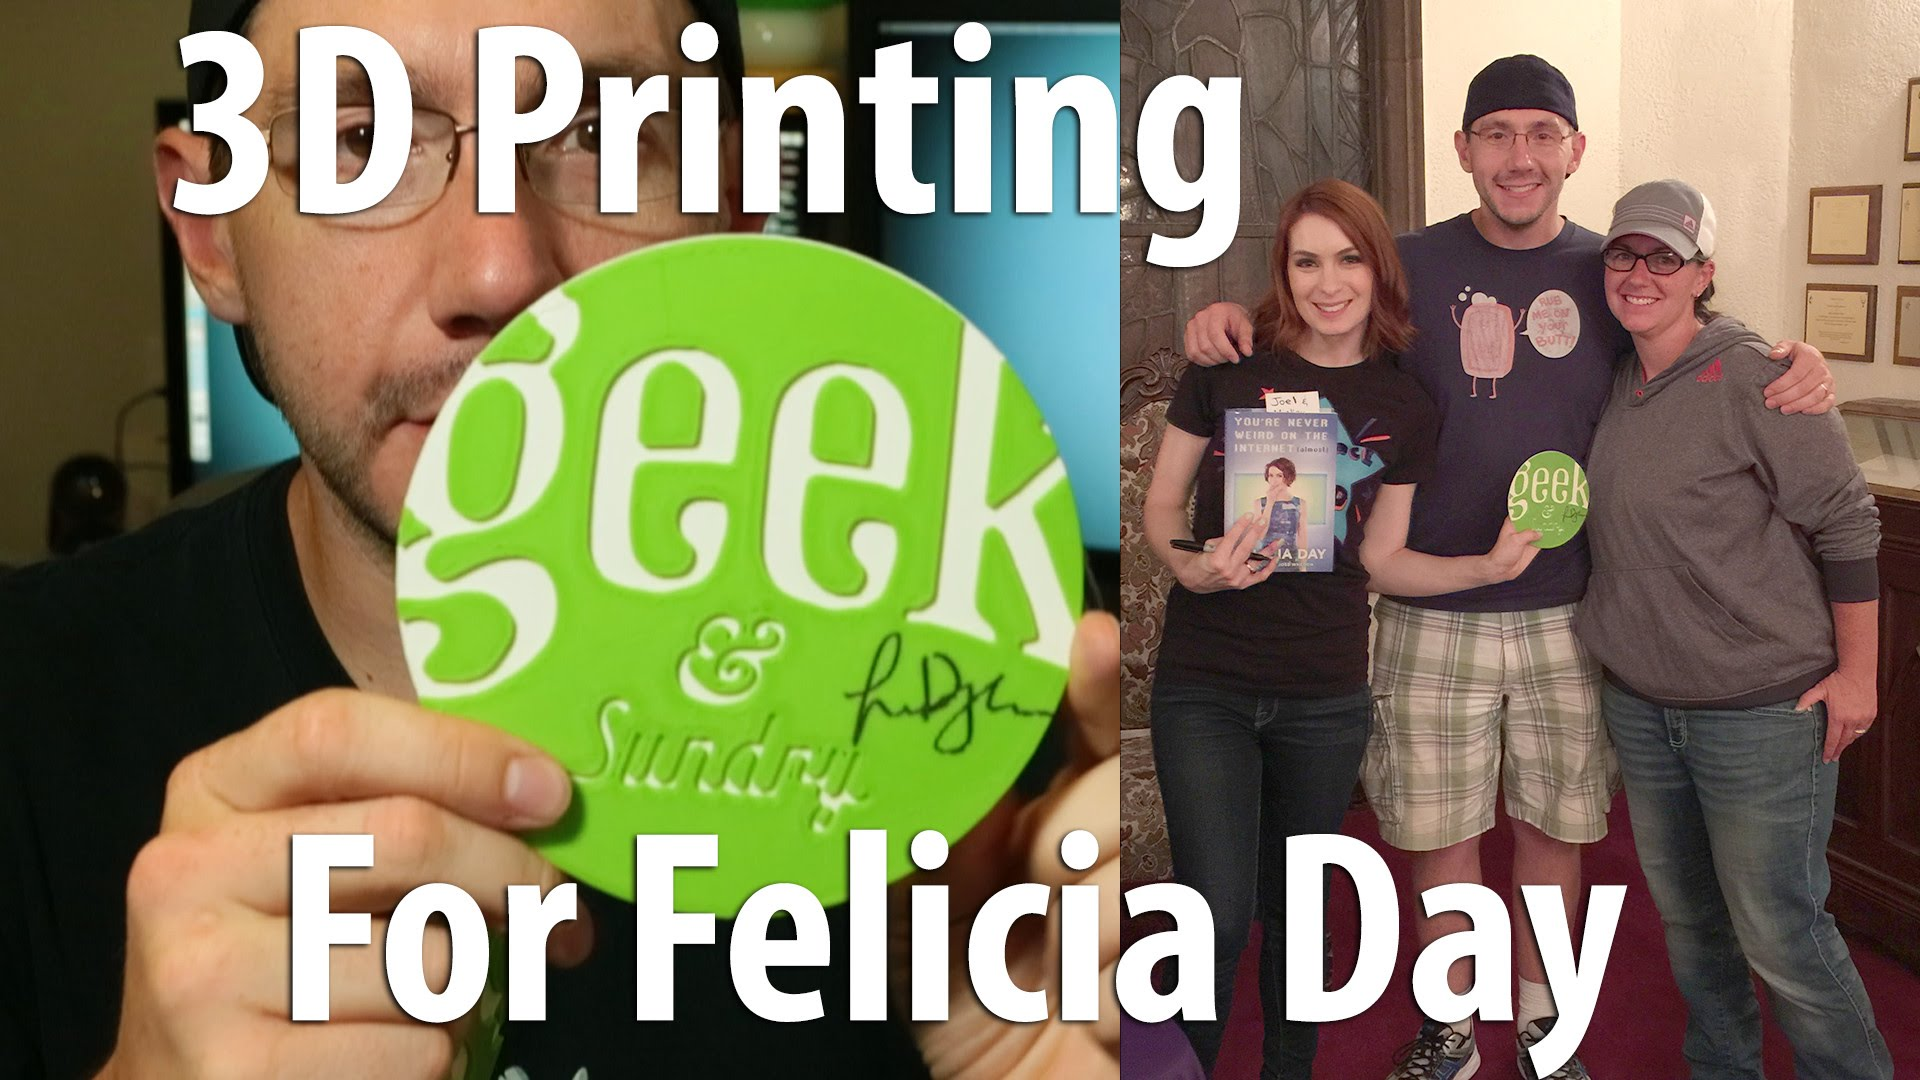 3D Printing Geek & Sundry logo for Felicia Day